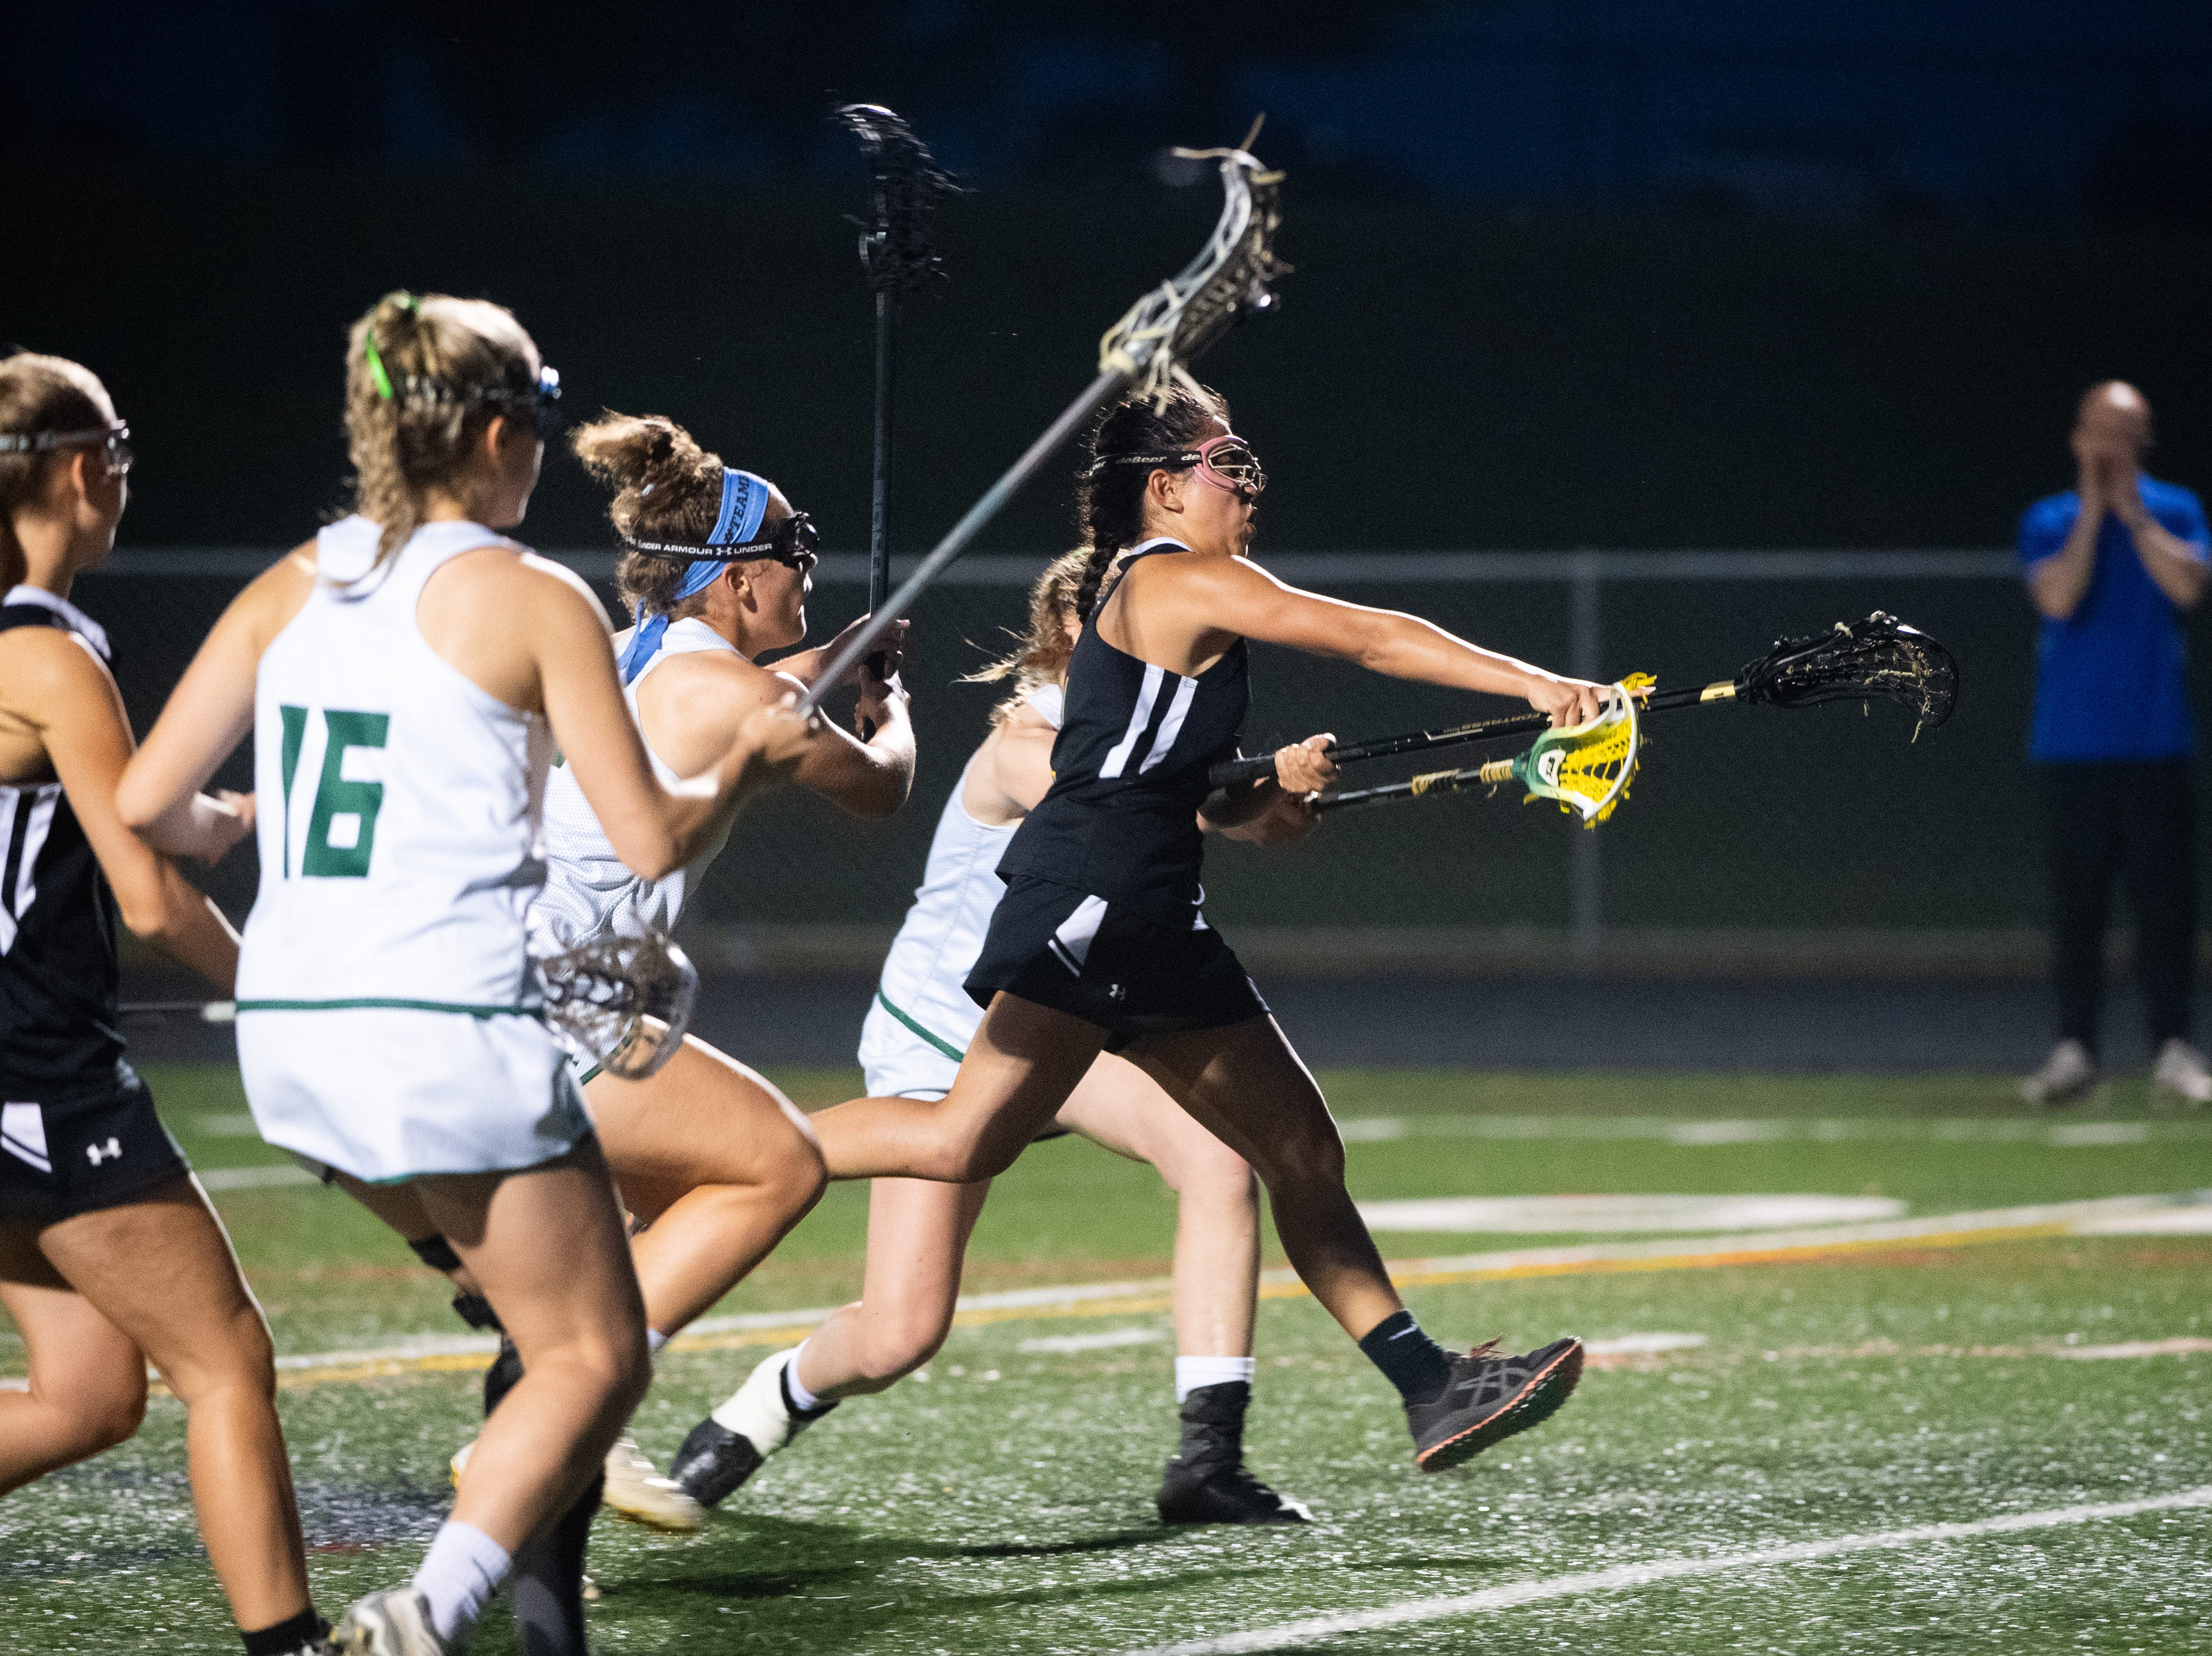 Jenna Soukaseum (1) slings the ball at goal during the YAIAA girls lacrosse championship game between York Catholic and Kennard-Dale, May 10, 2019 at Eastern York High School. The Rams defeated the Fighting Irish 11 to 10.